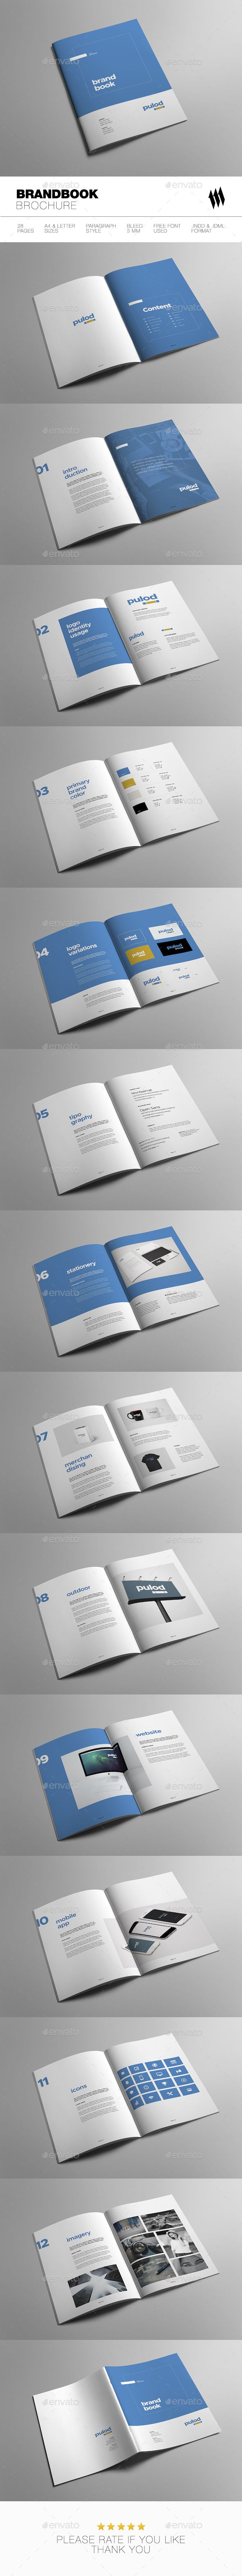 Minimal Brand Book 28 Pages Template InDesign INDD